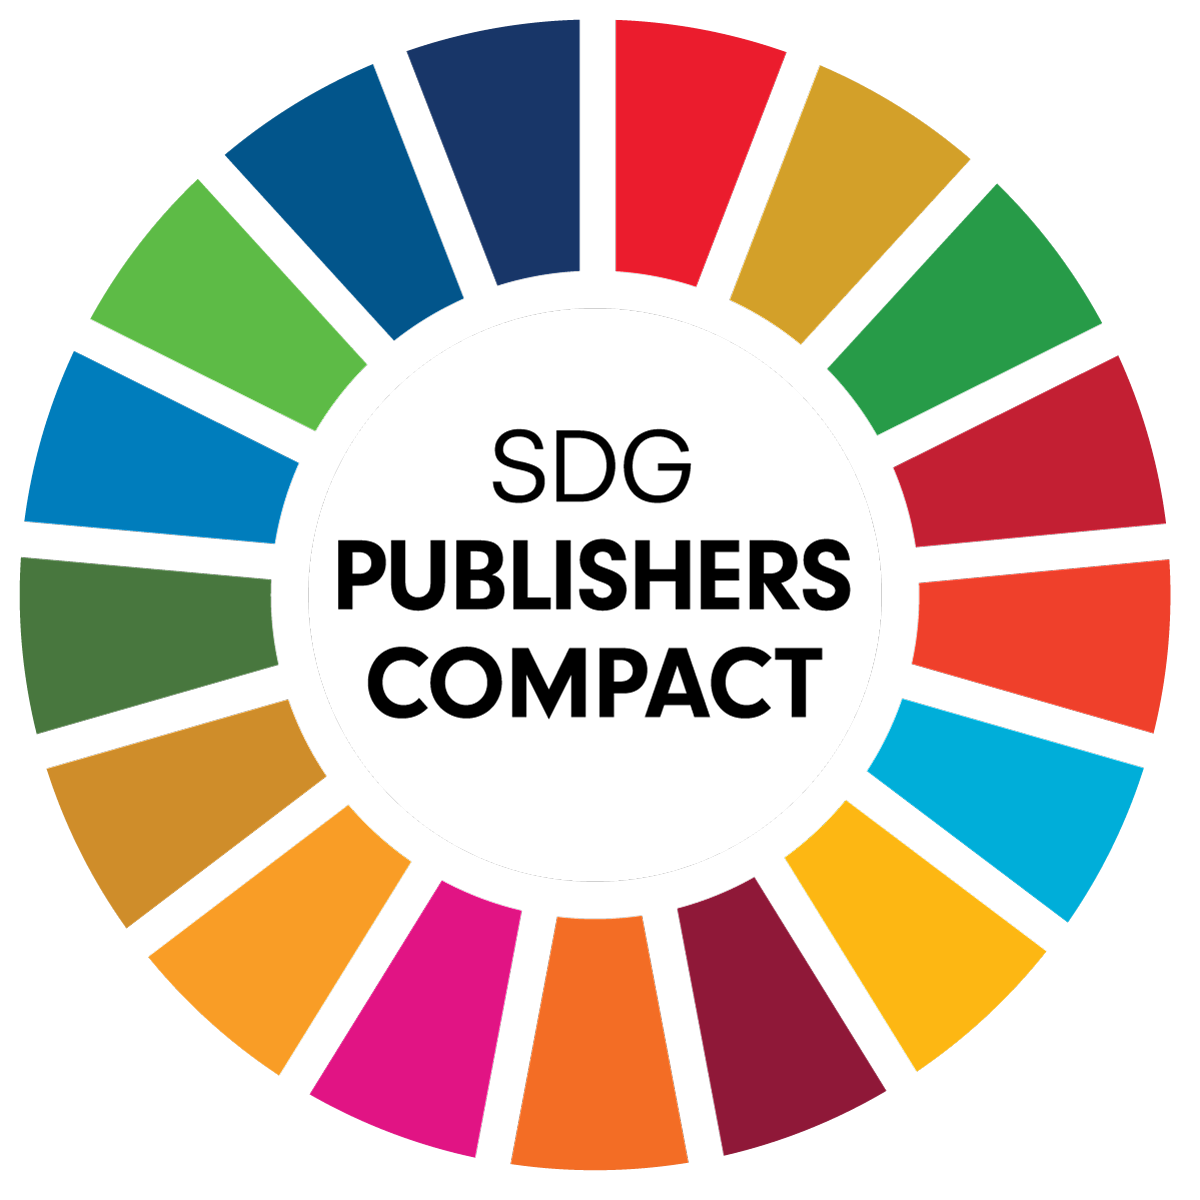 Bristol University Press (BUP) becomes a signatory to the UN Sustainable Development Goals Publisher